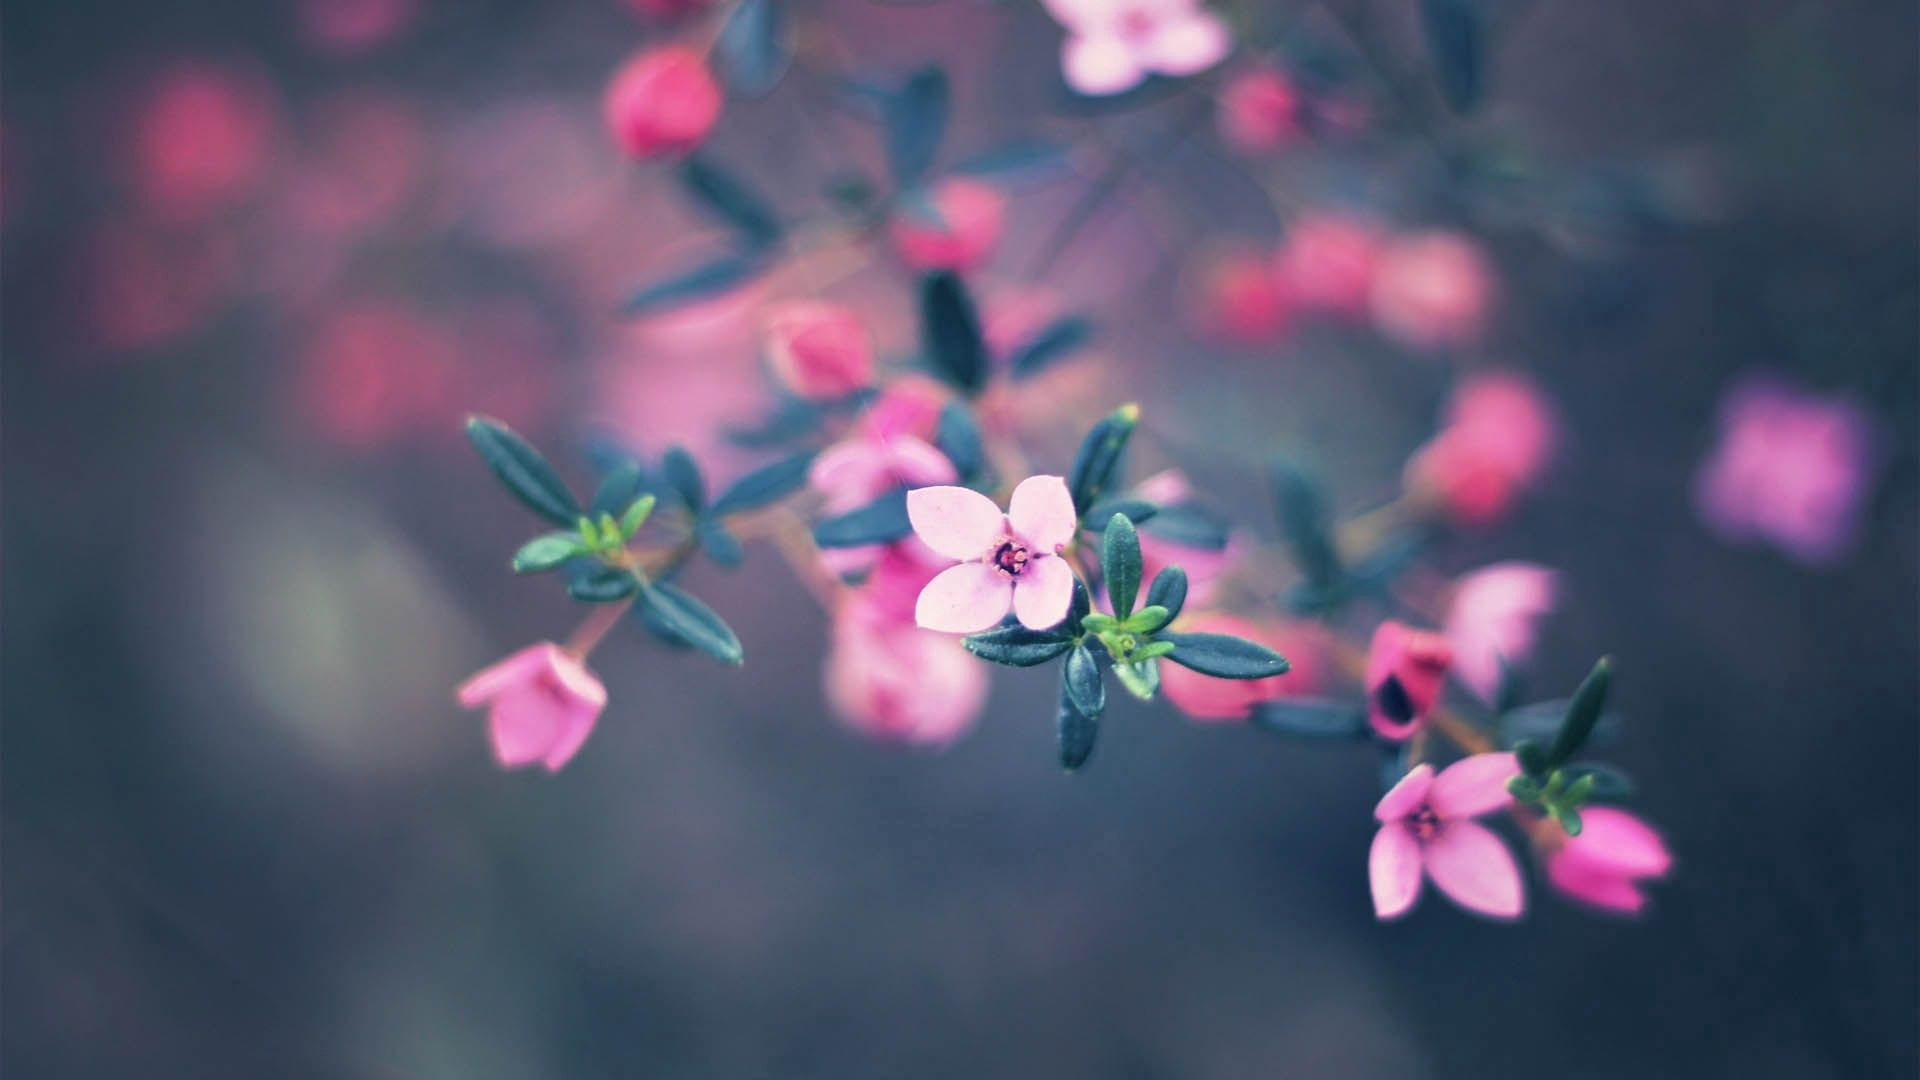 69117 download wallpaper Flowers, Macro, Blur, Smooth, Bloom, Flowering screensavers and pictures for free